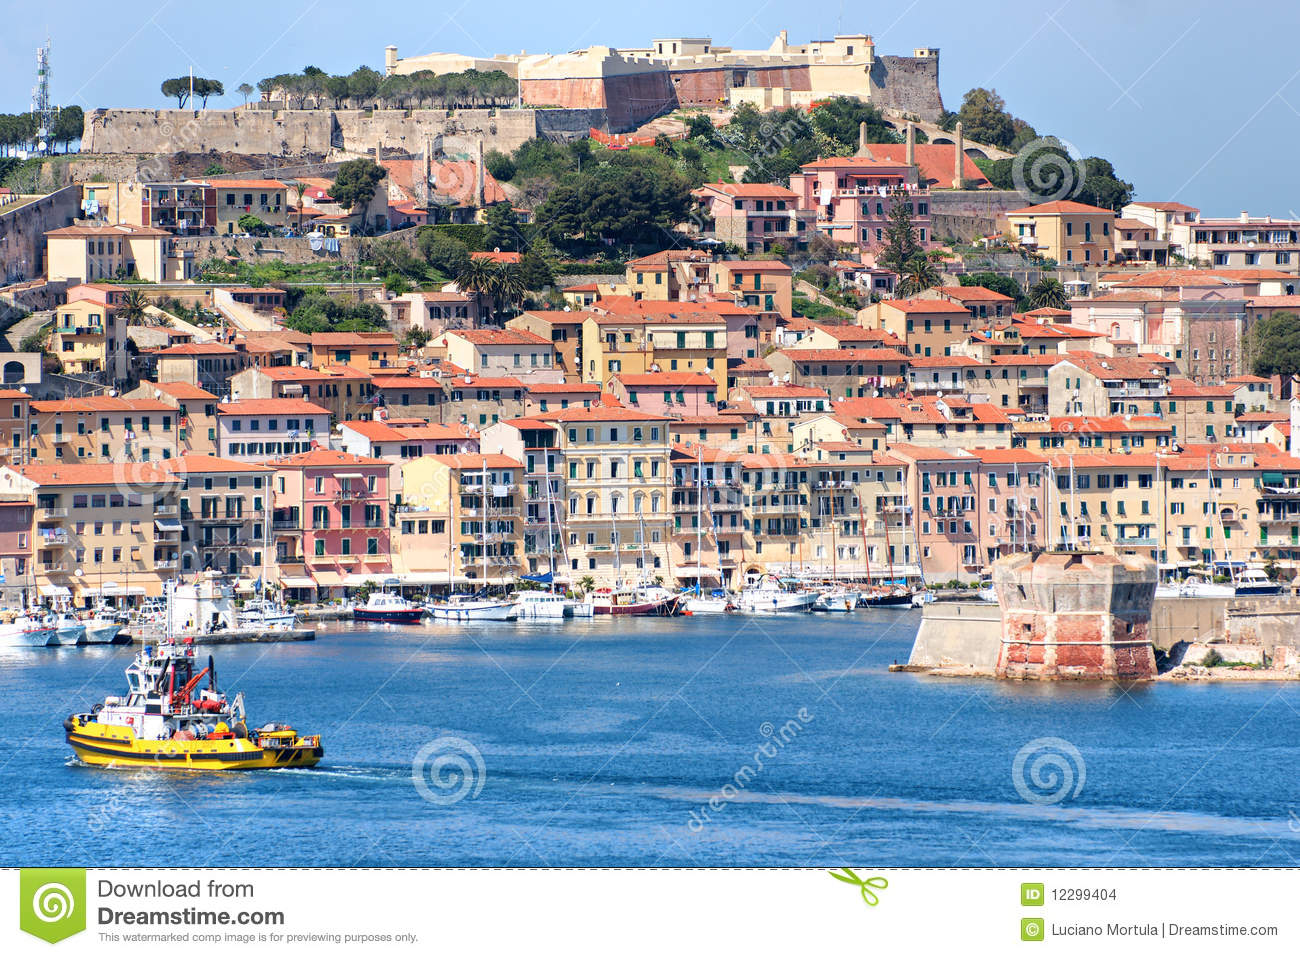 Hotel Caminetto Elba Portoferraio Italy Pictures And Videos And News Citiestips